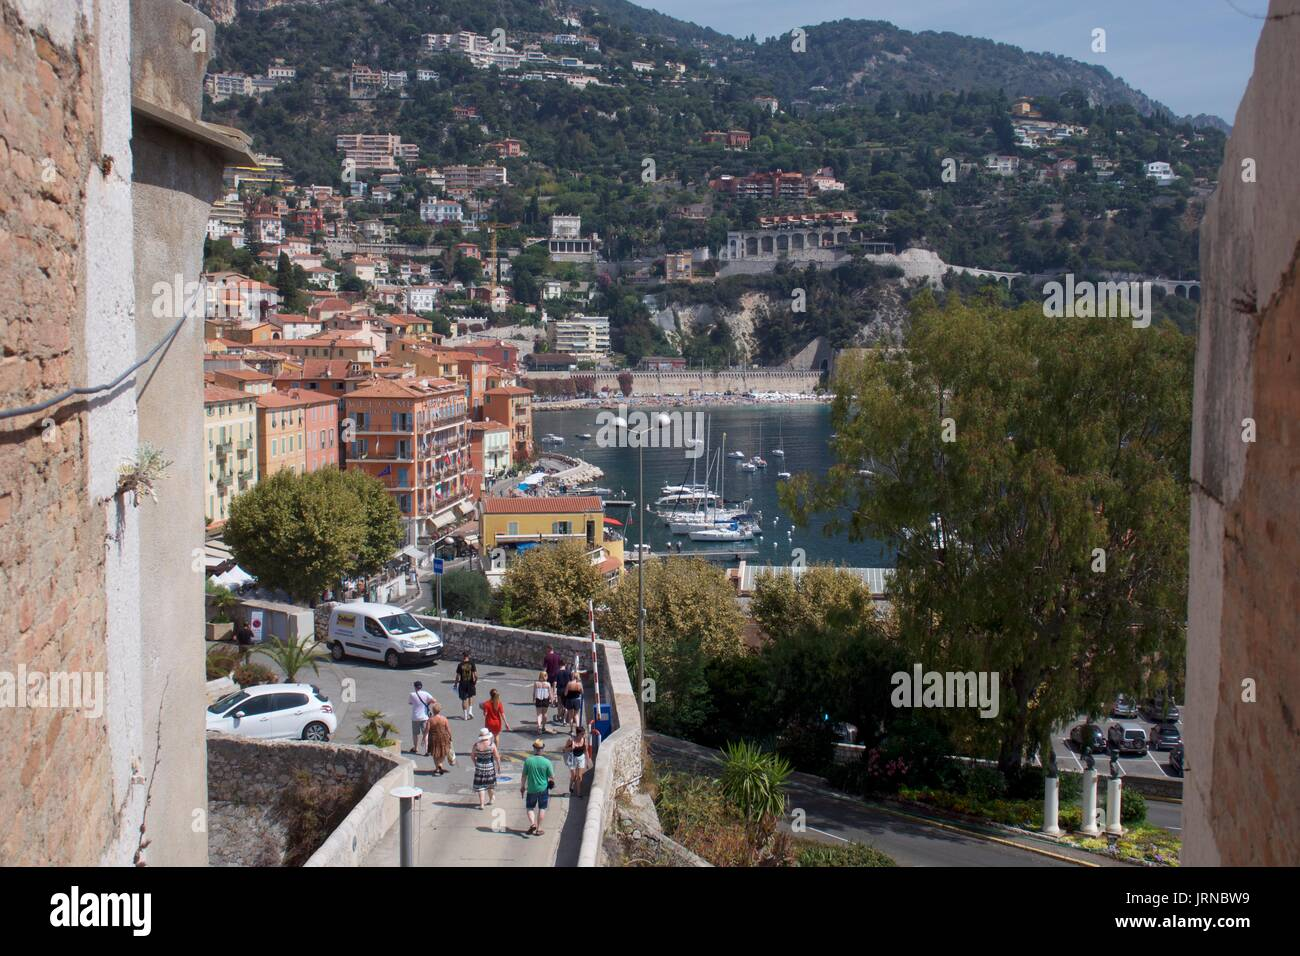 Elevated view of tourists strolling near coast, Nice, France - Stock Image